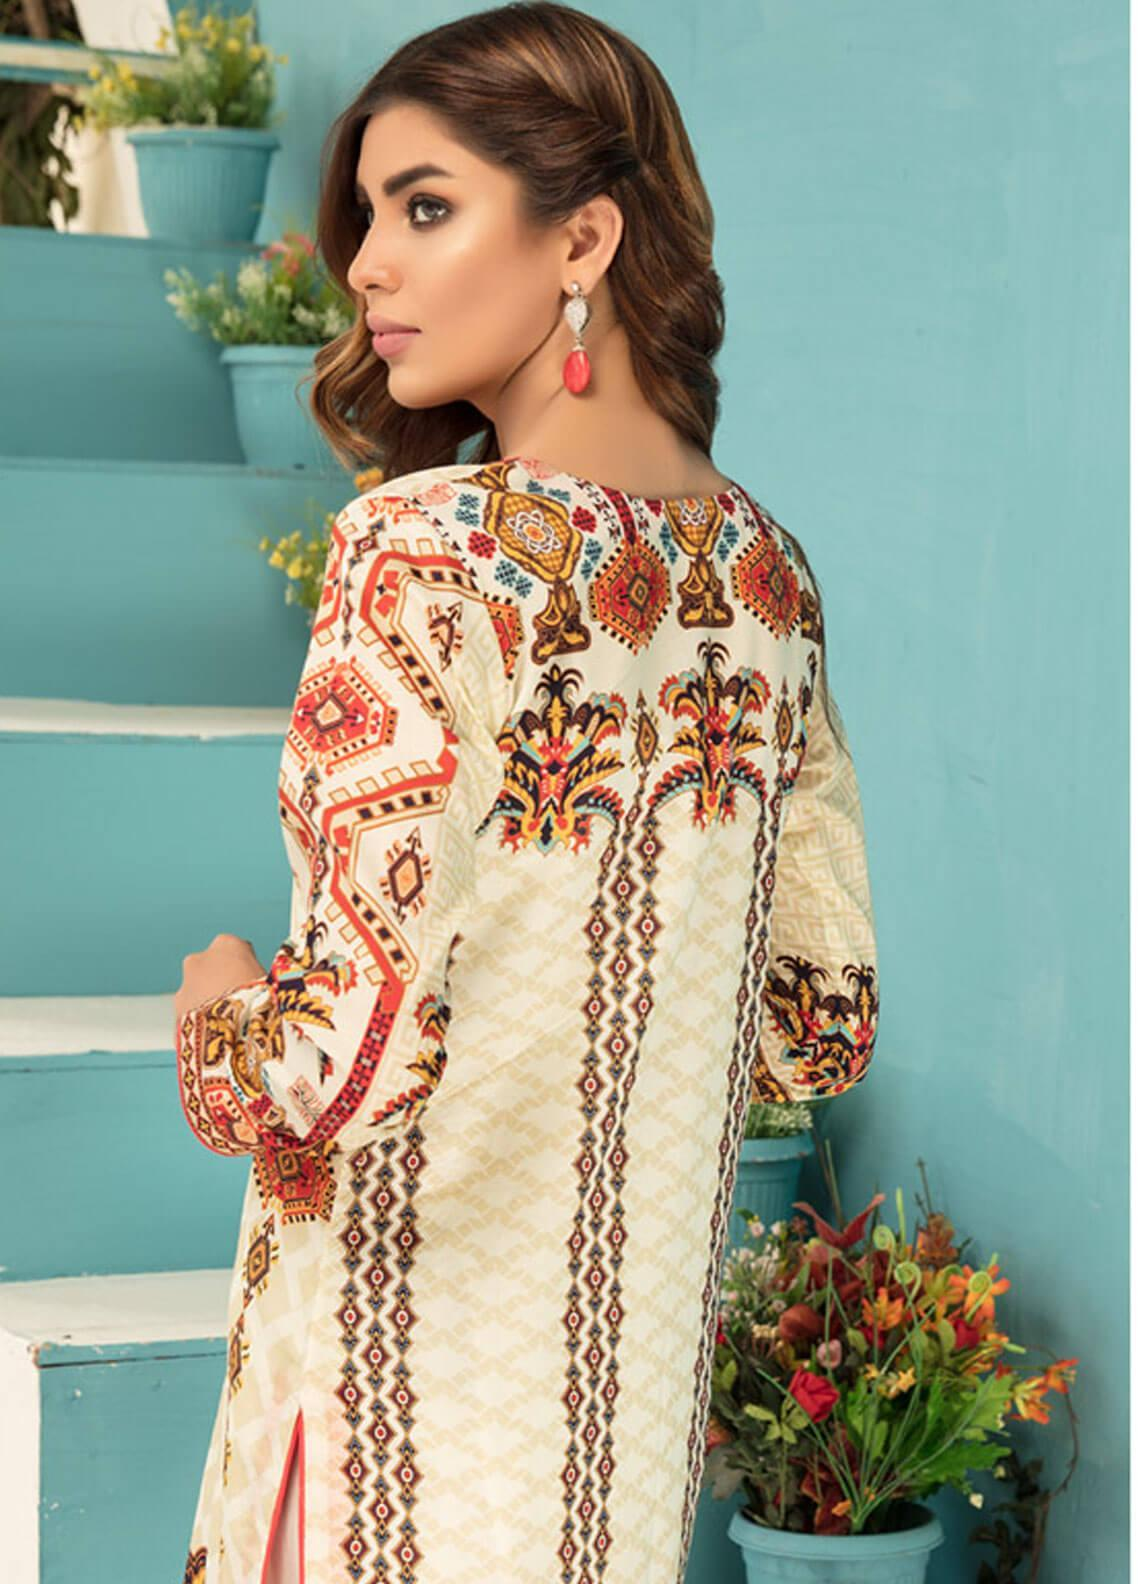 b08d820c2e Sanoor by Noor Fatima Printed Lawn Unstitched Kurties SNO19F 870 - Festive  Collection. Online only